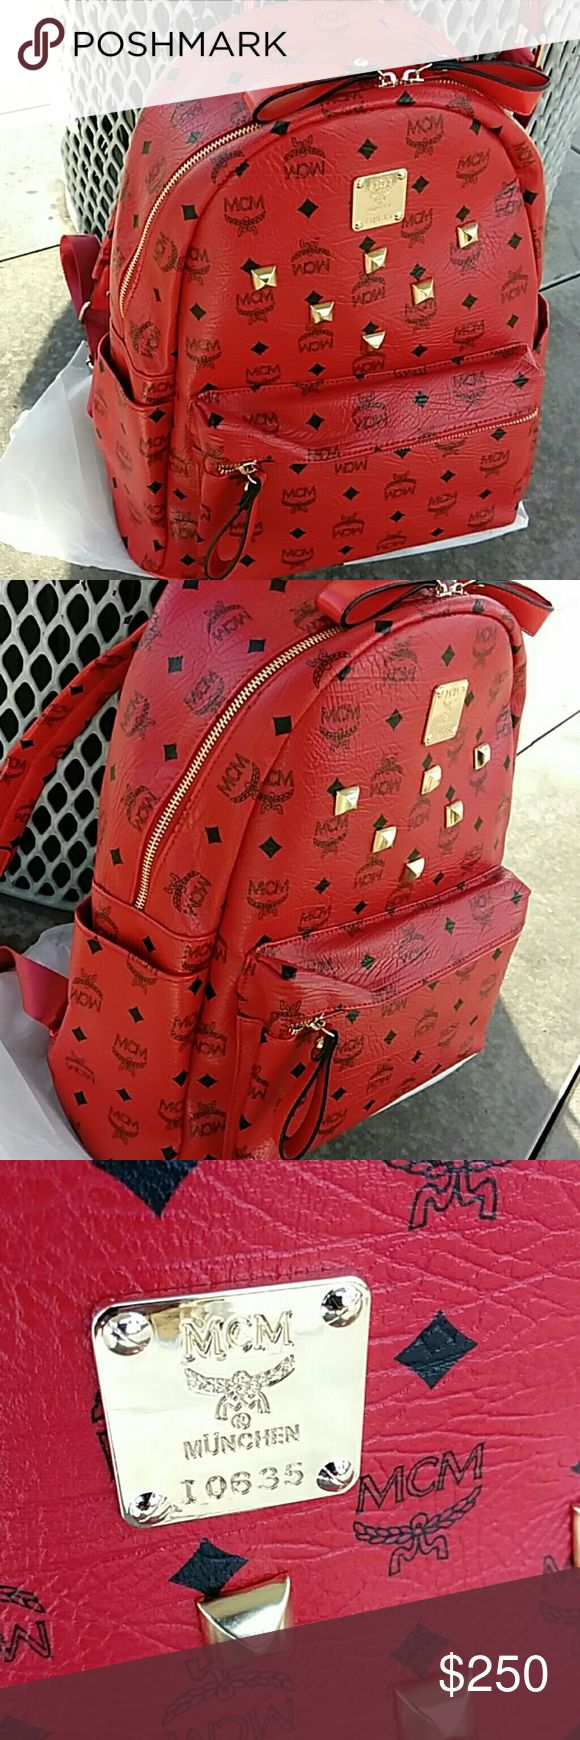 MCM BACKPACK RUBY RED MEDIUM BRAND NEW COMES WITH DUST BAG STARK INSPIRED PRICE FIRM SEE PICS. MCM Bags Backpacks